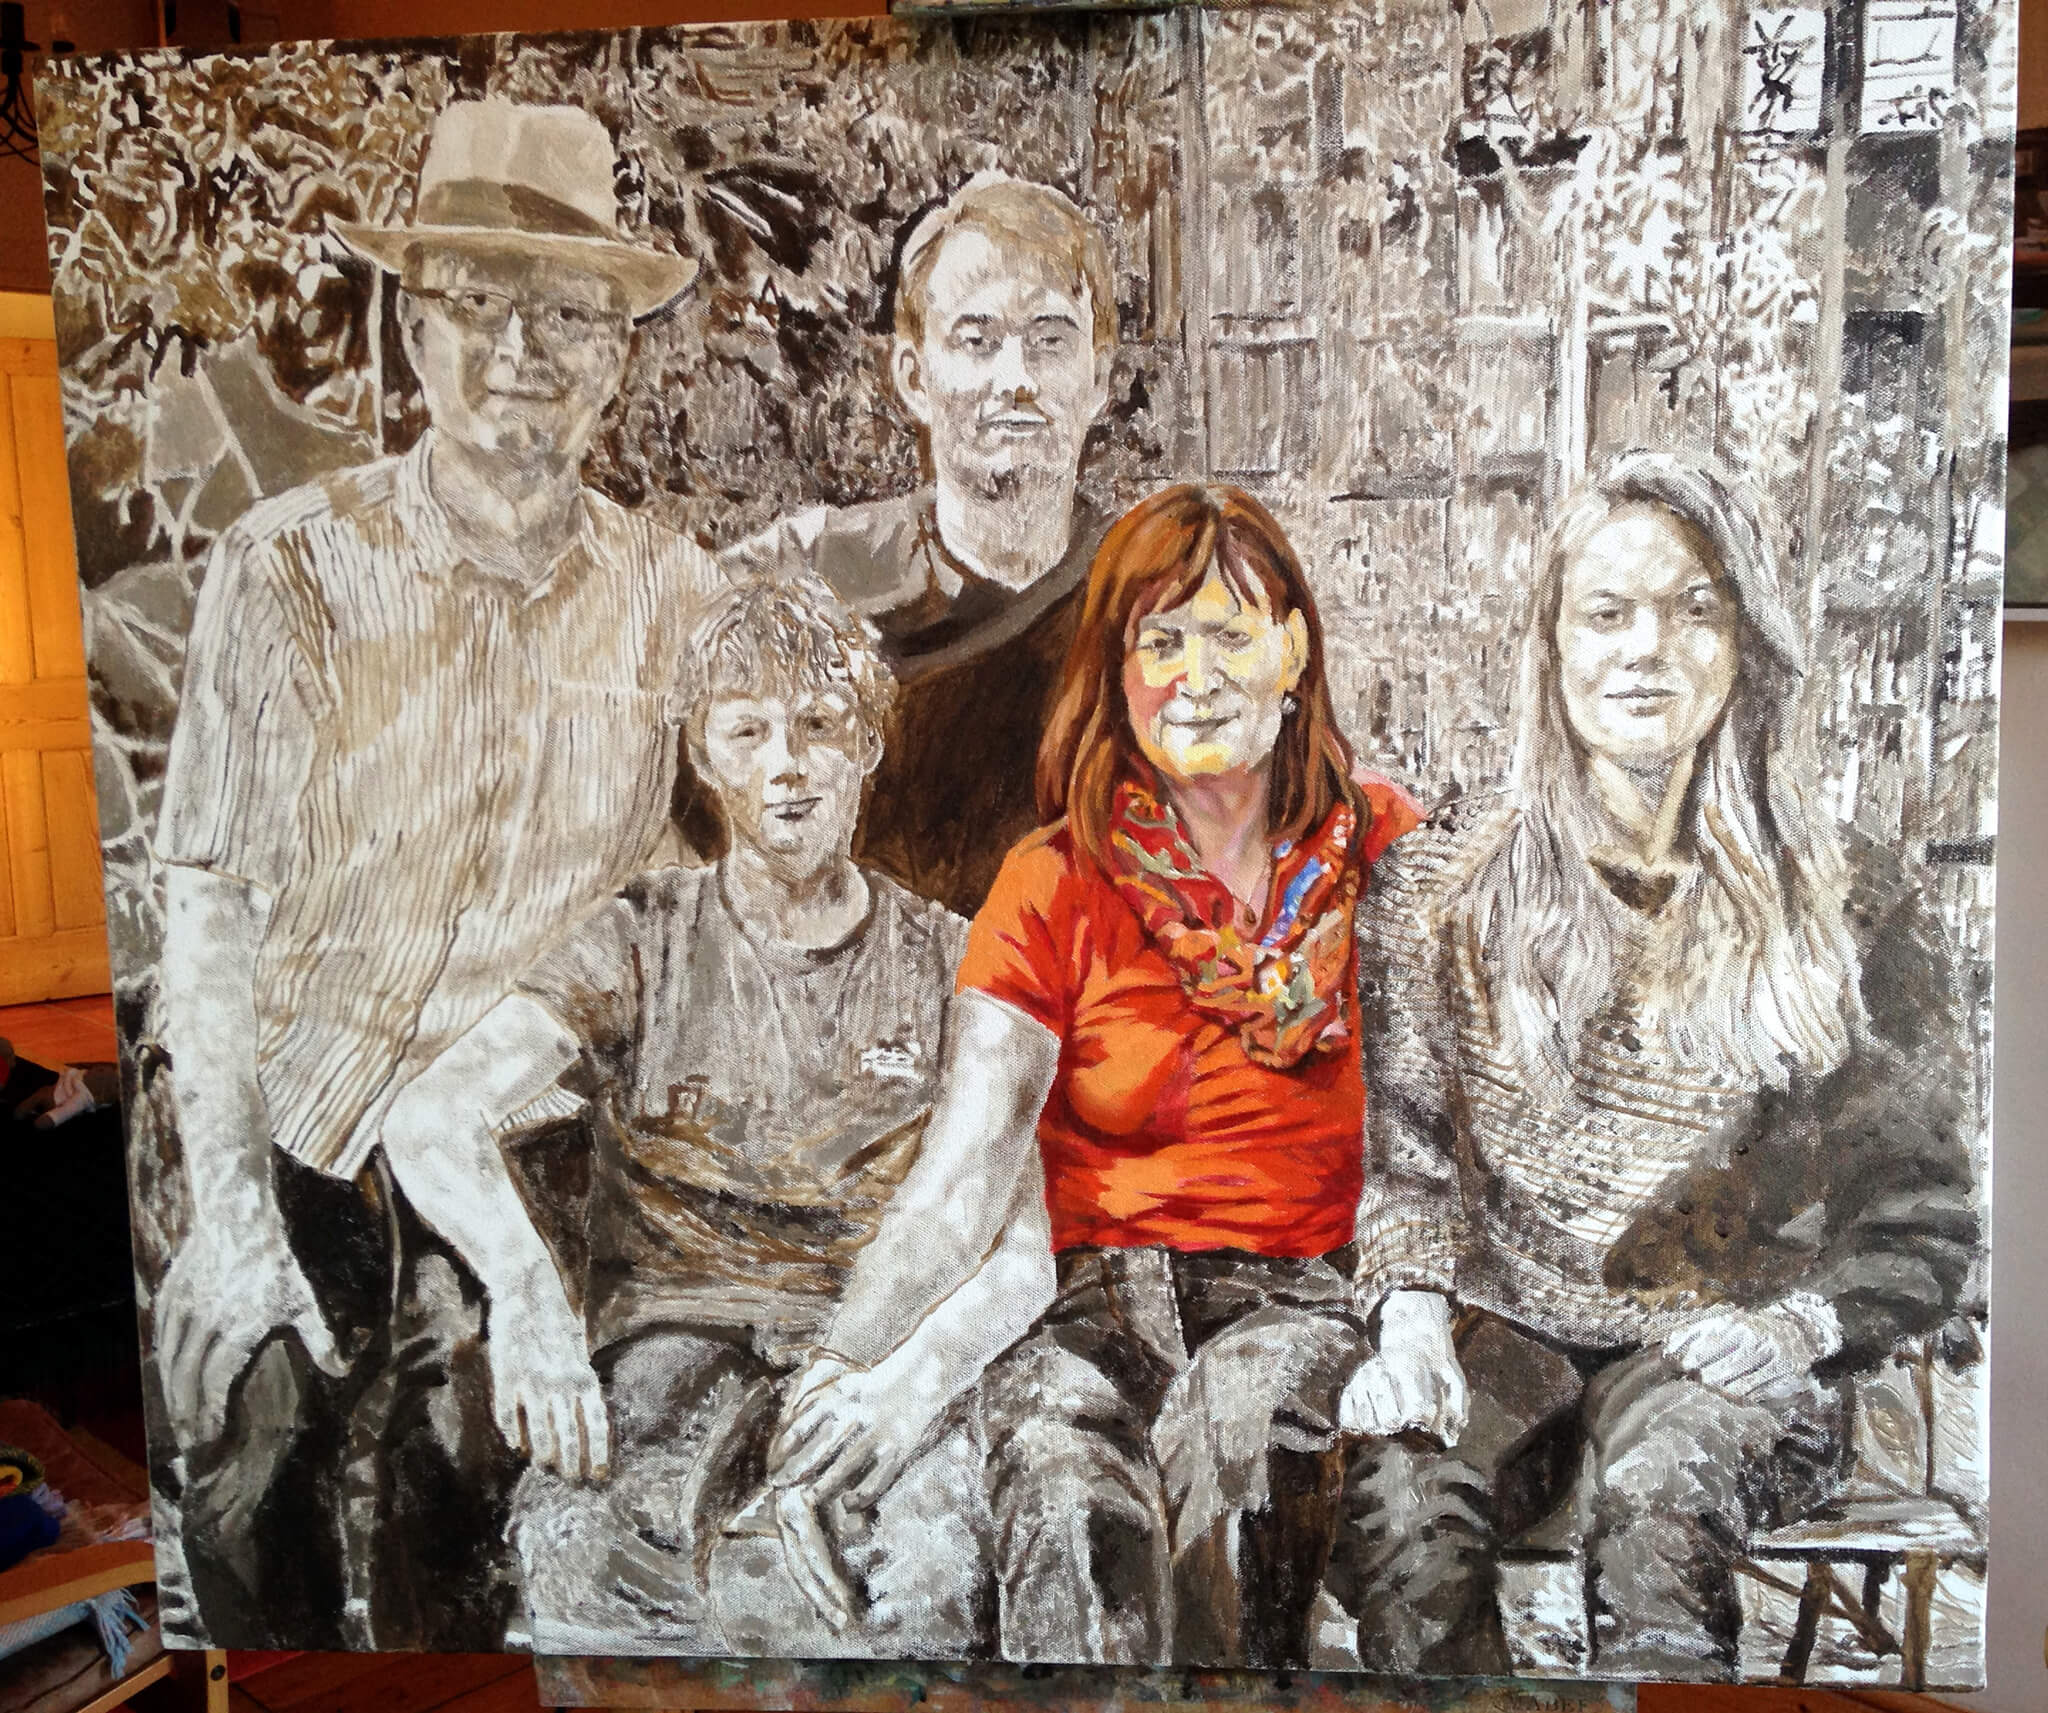 Stella Tooth's family portrait in oil on canvas artwork starting to paint fat over lean in colour.